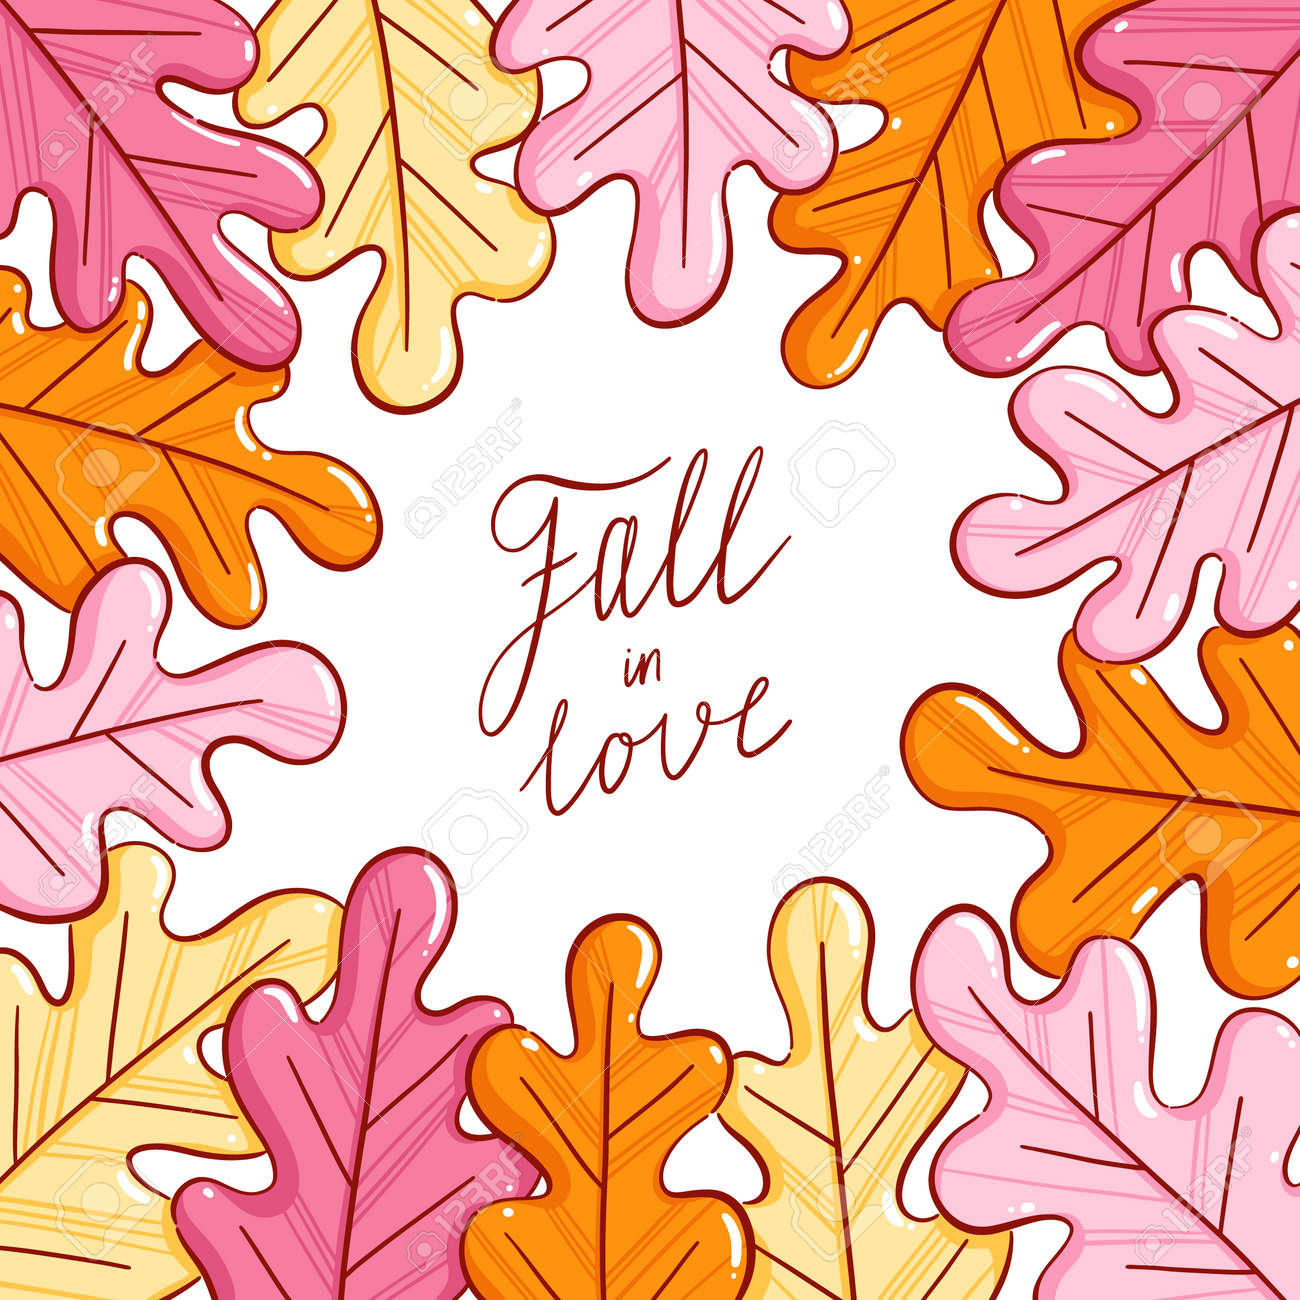 Colorful autumn leaves, fall in love lettering, vector illustration frame isolated on white background - 163336749